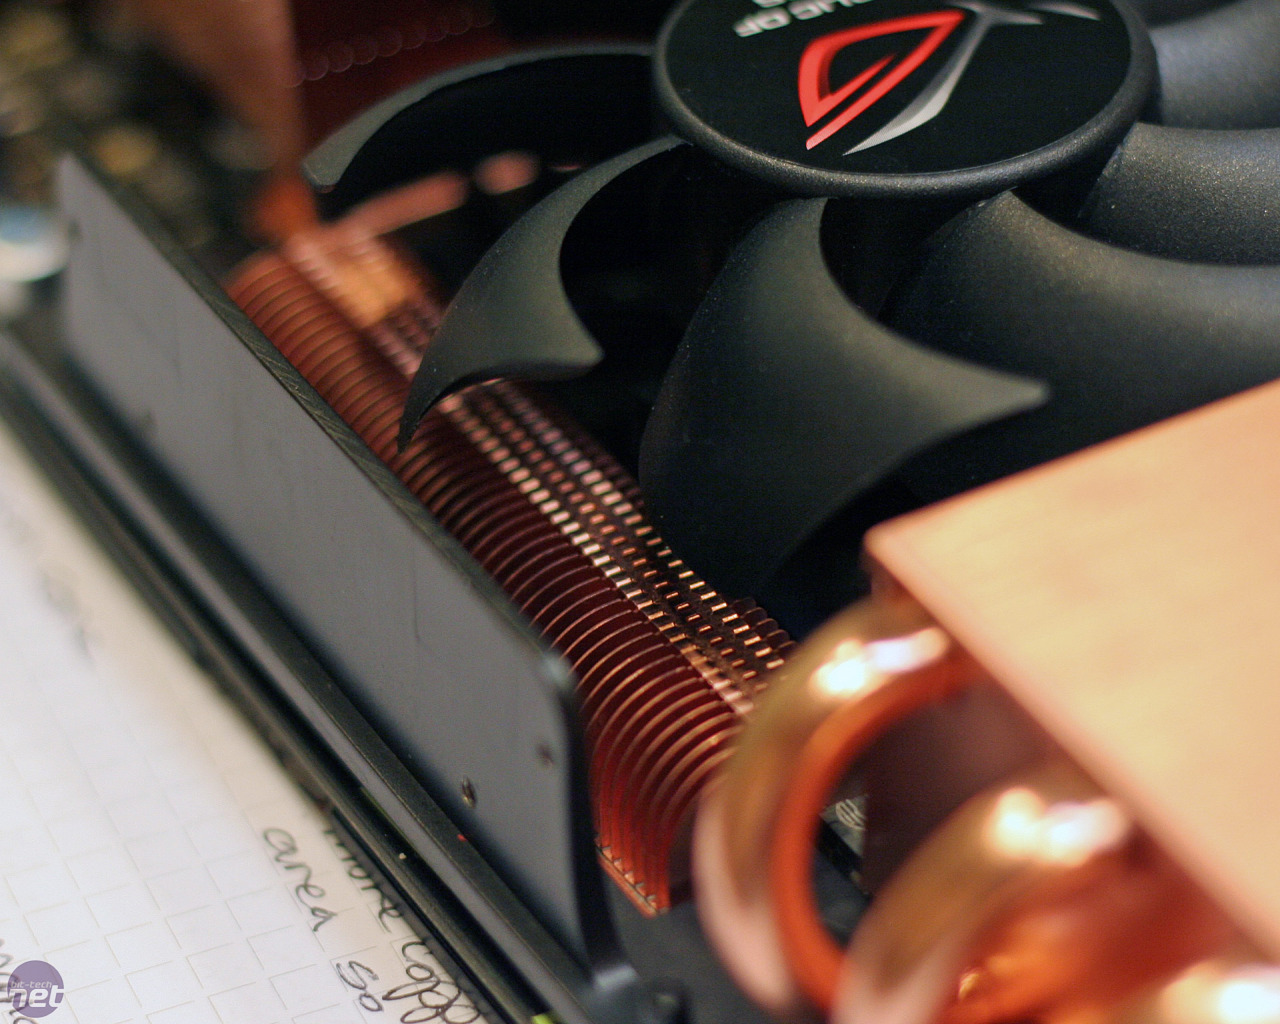 http://images.bit-tech.net/content_images/2010/06/asus-ares-and-immensity-technology-preview/ares-8.jpg